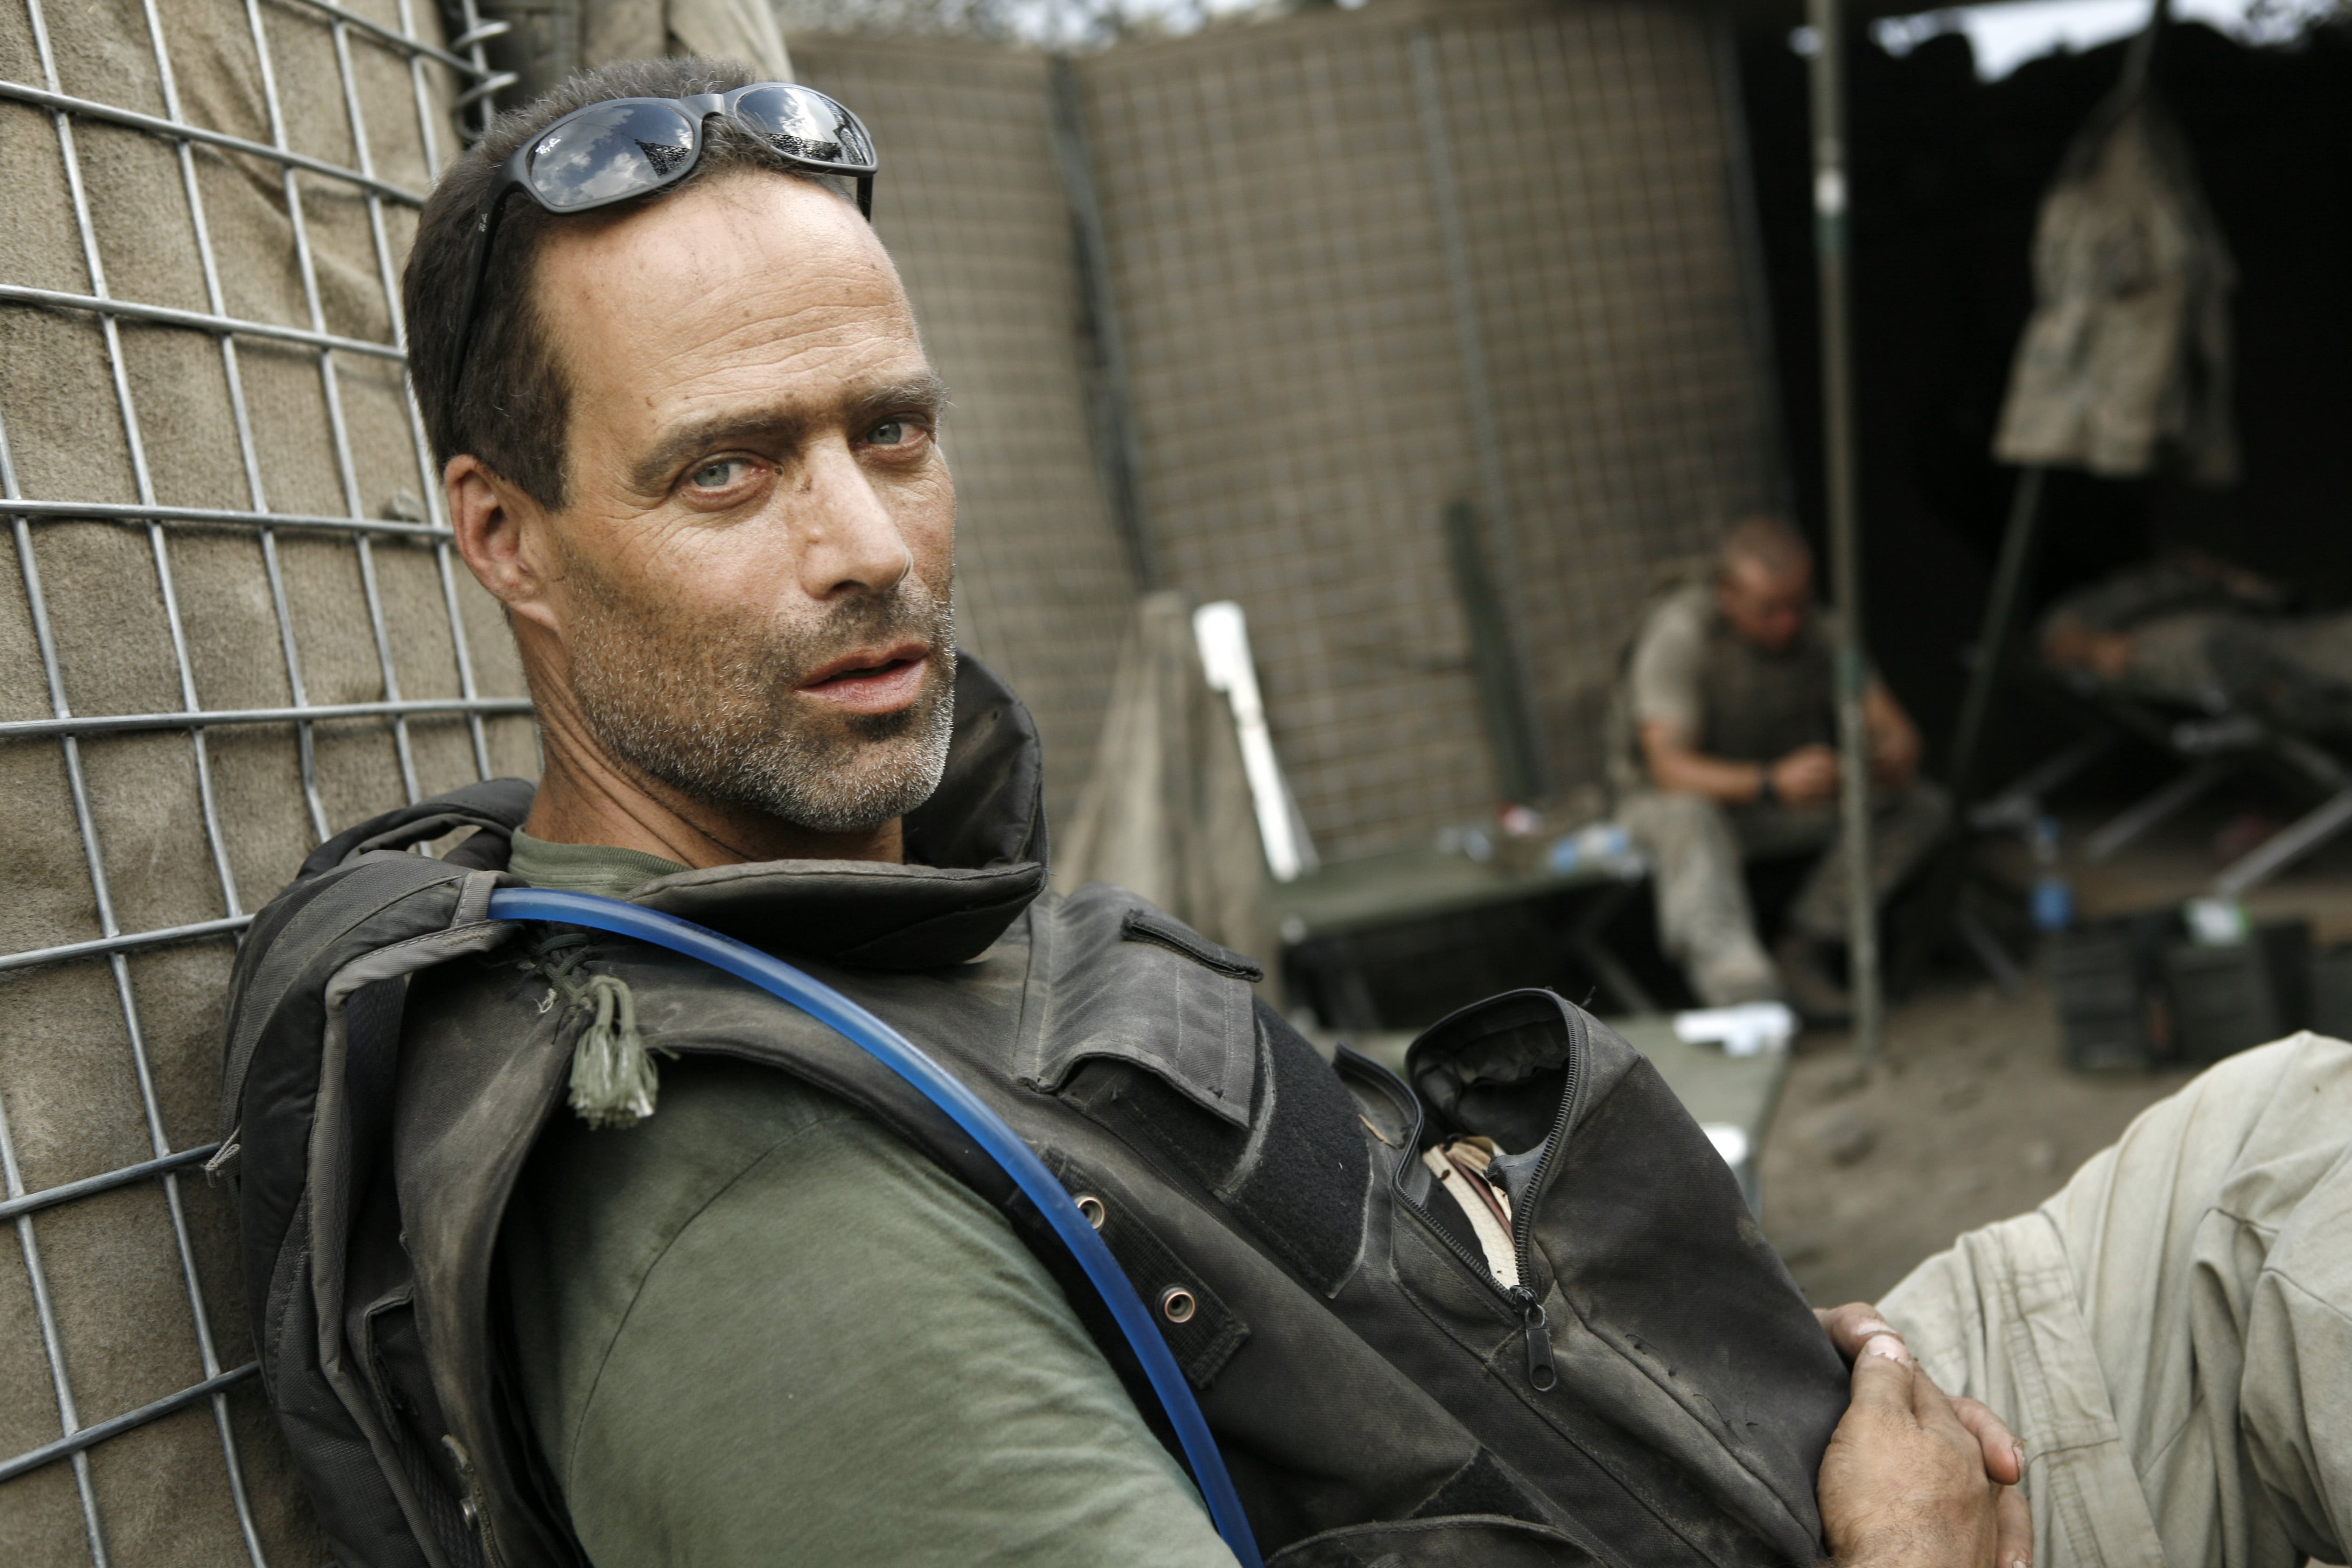 sebastian junger in military camp wearing camelbak